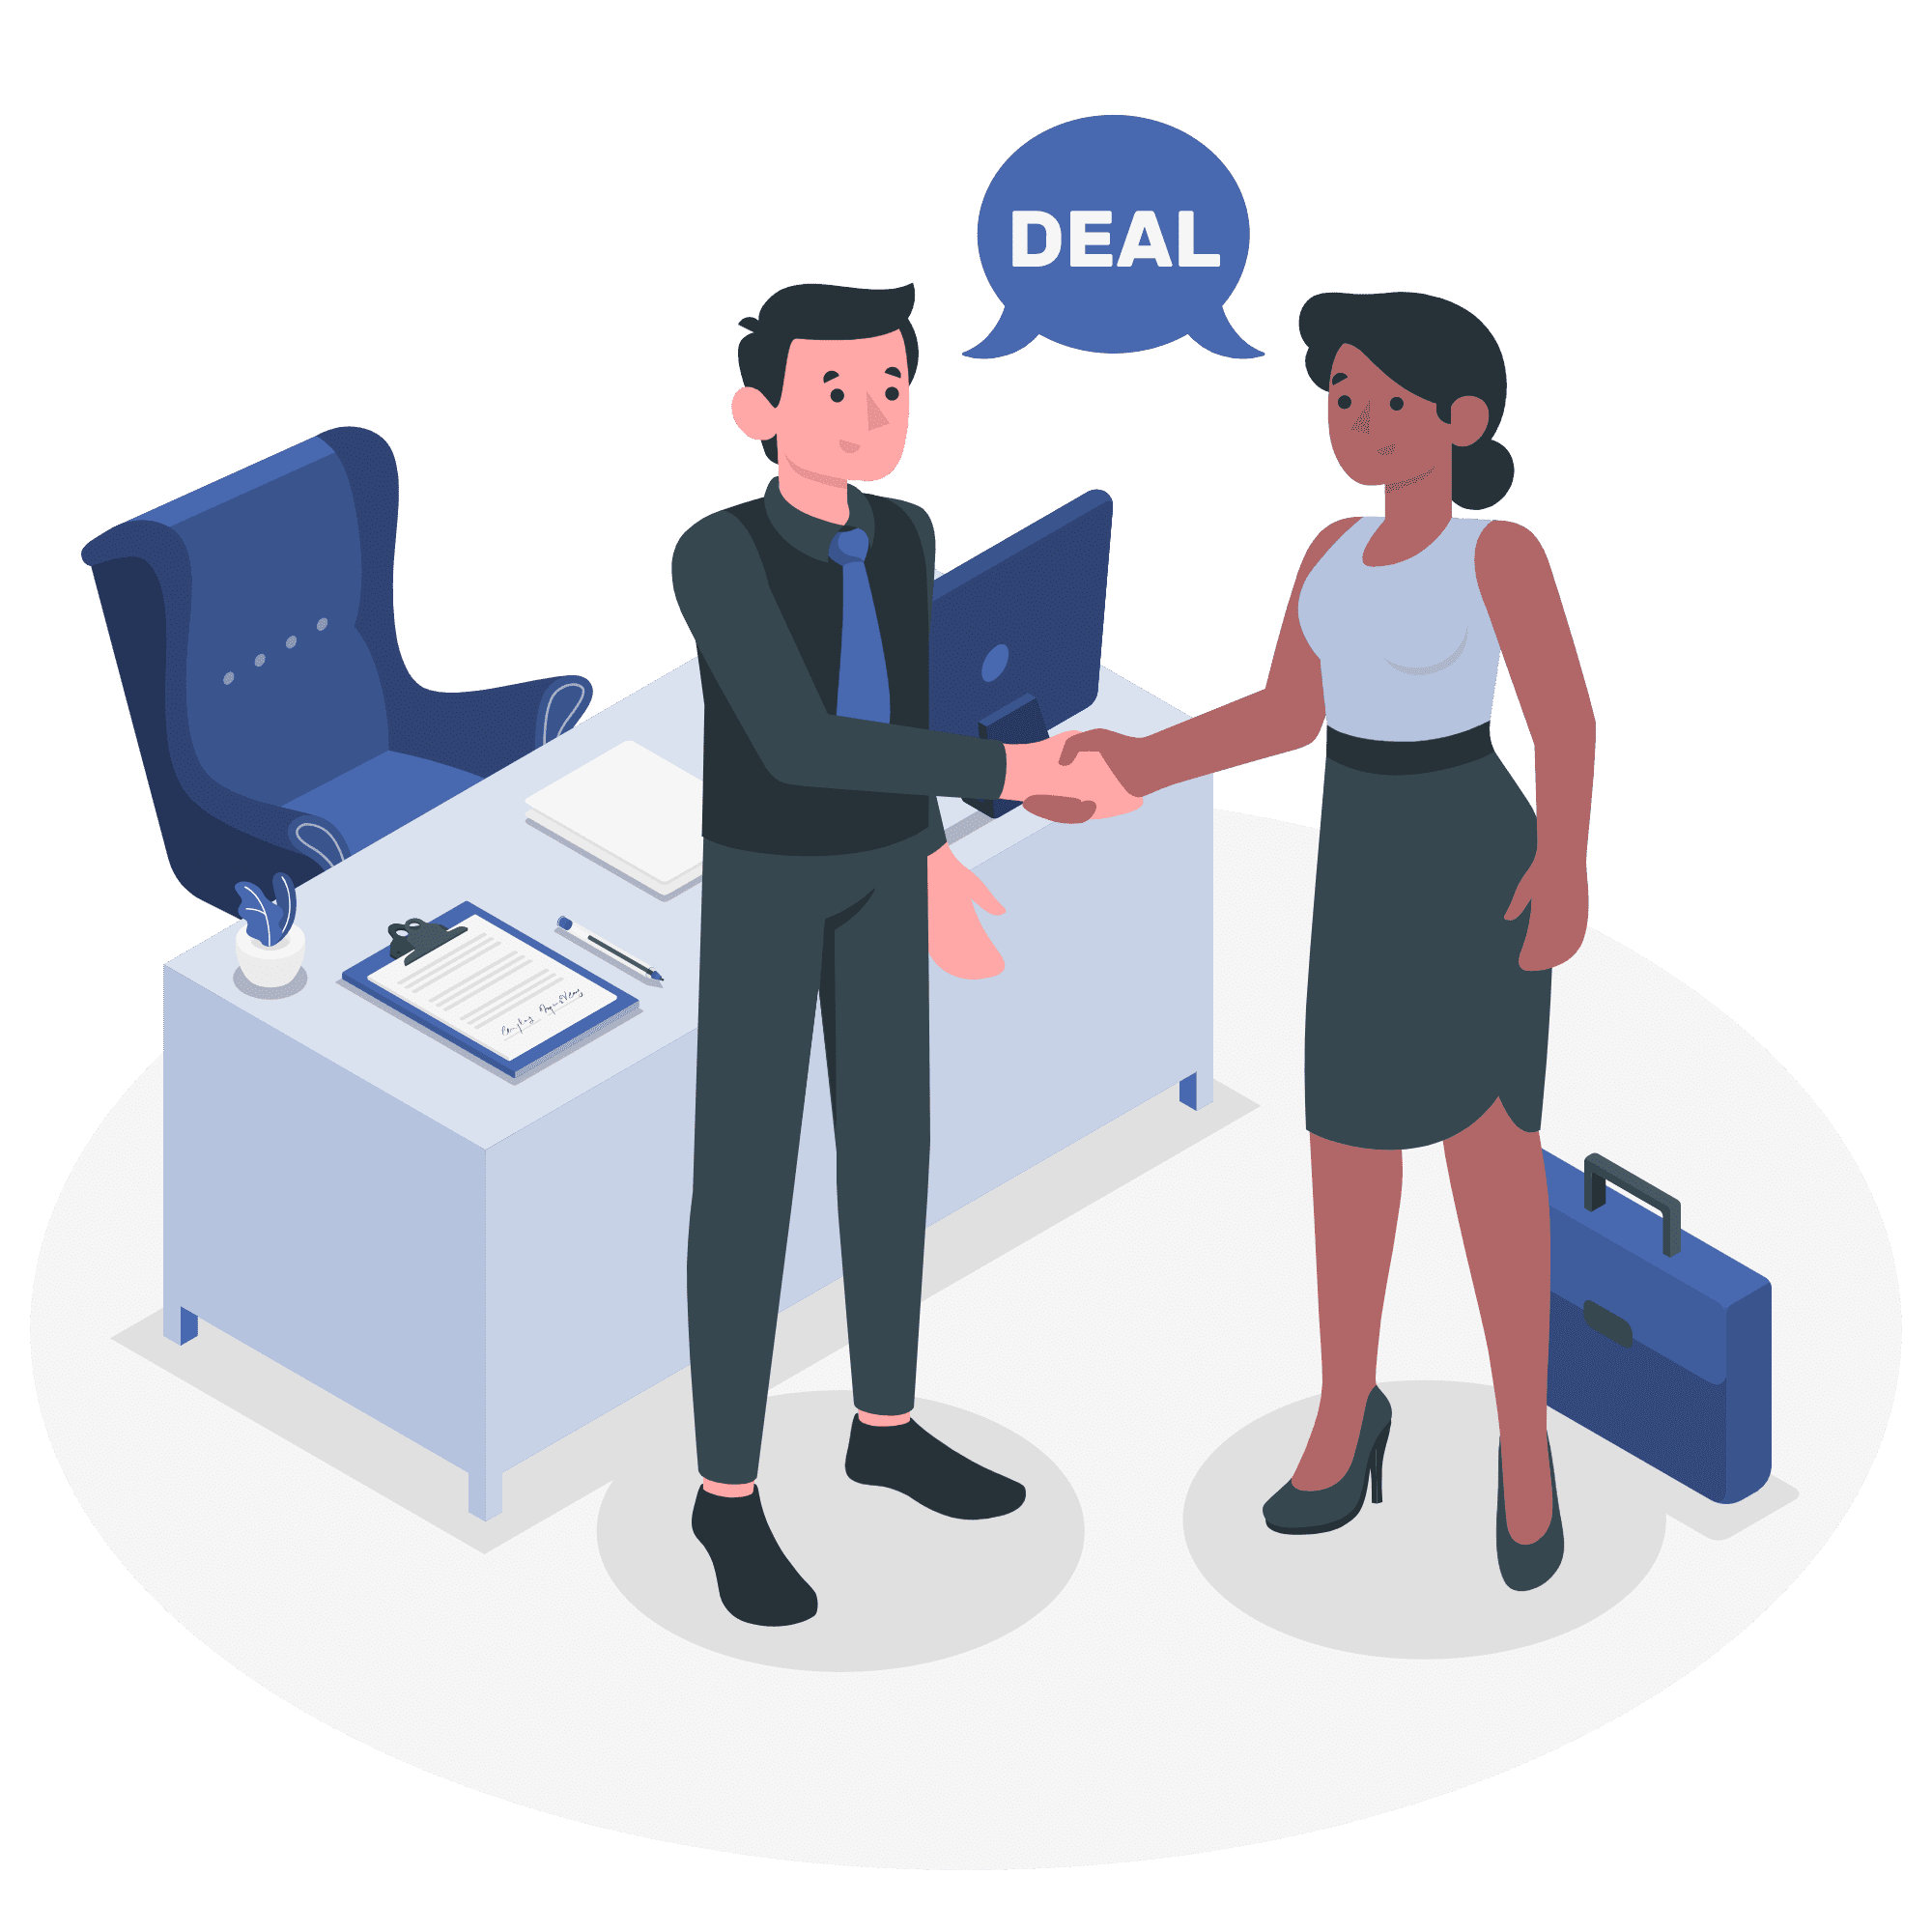 Business Deal Vector Illustration